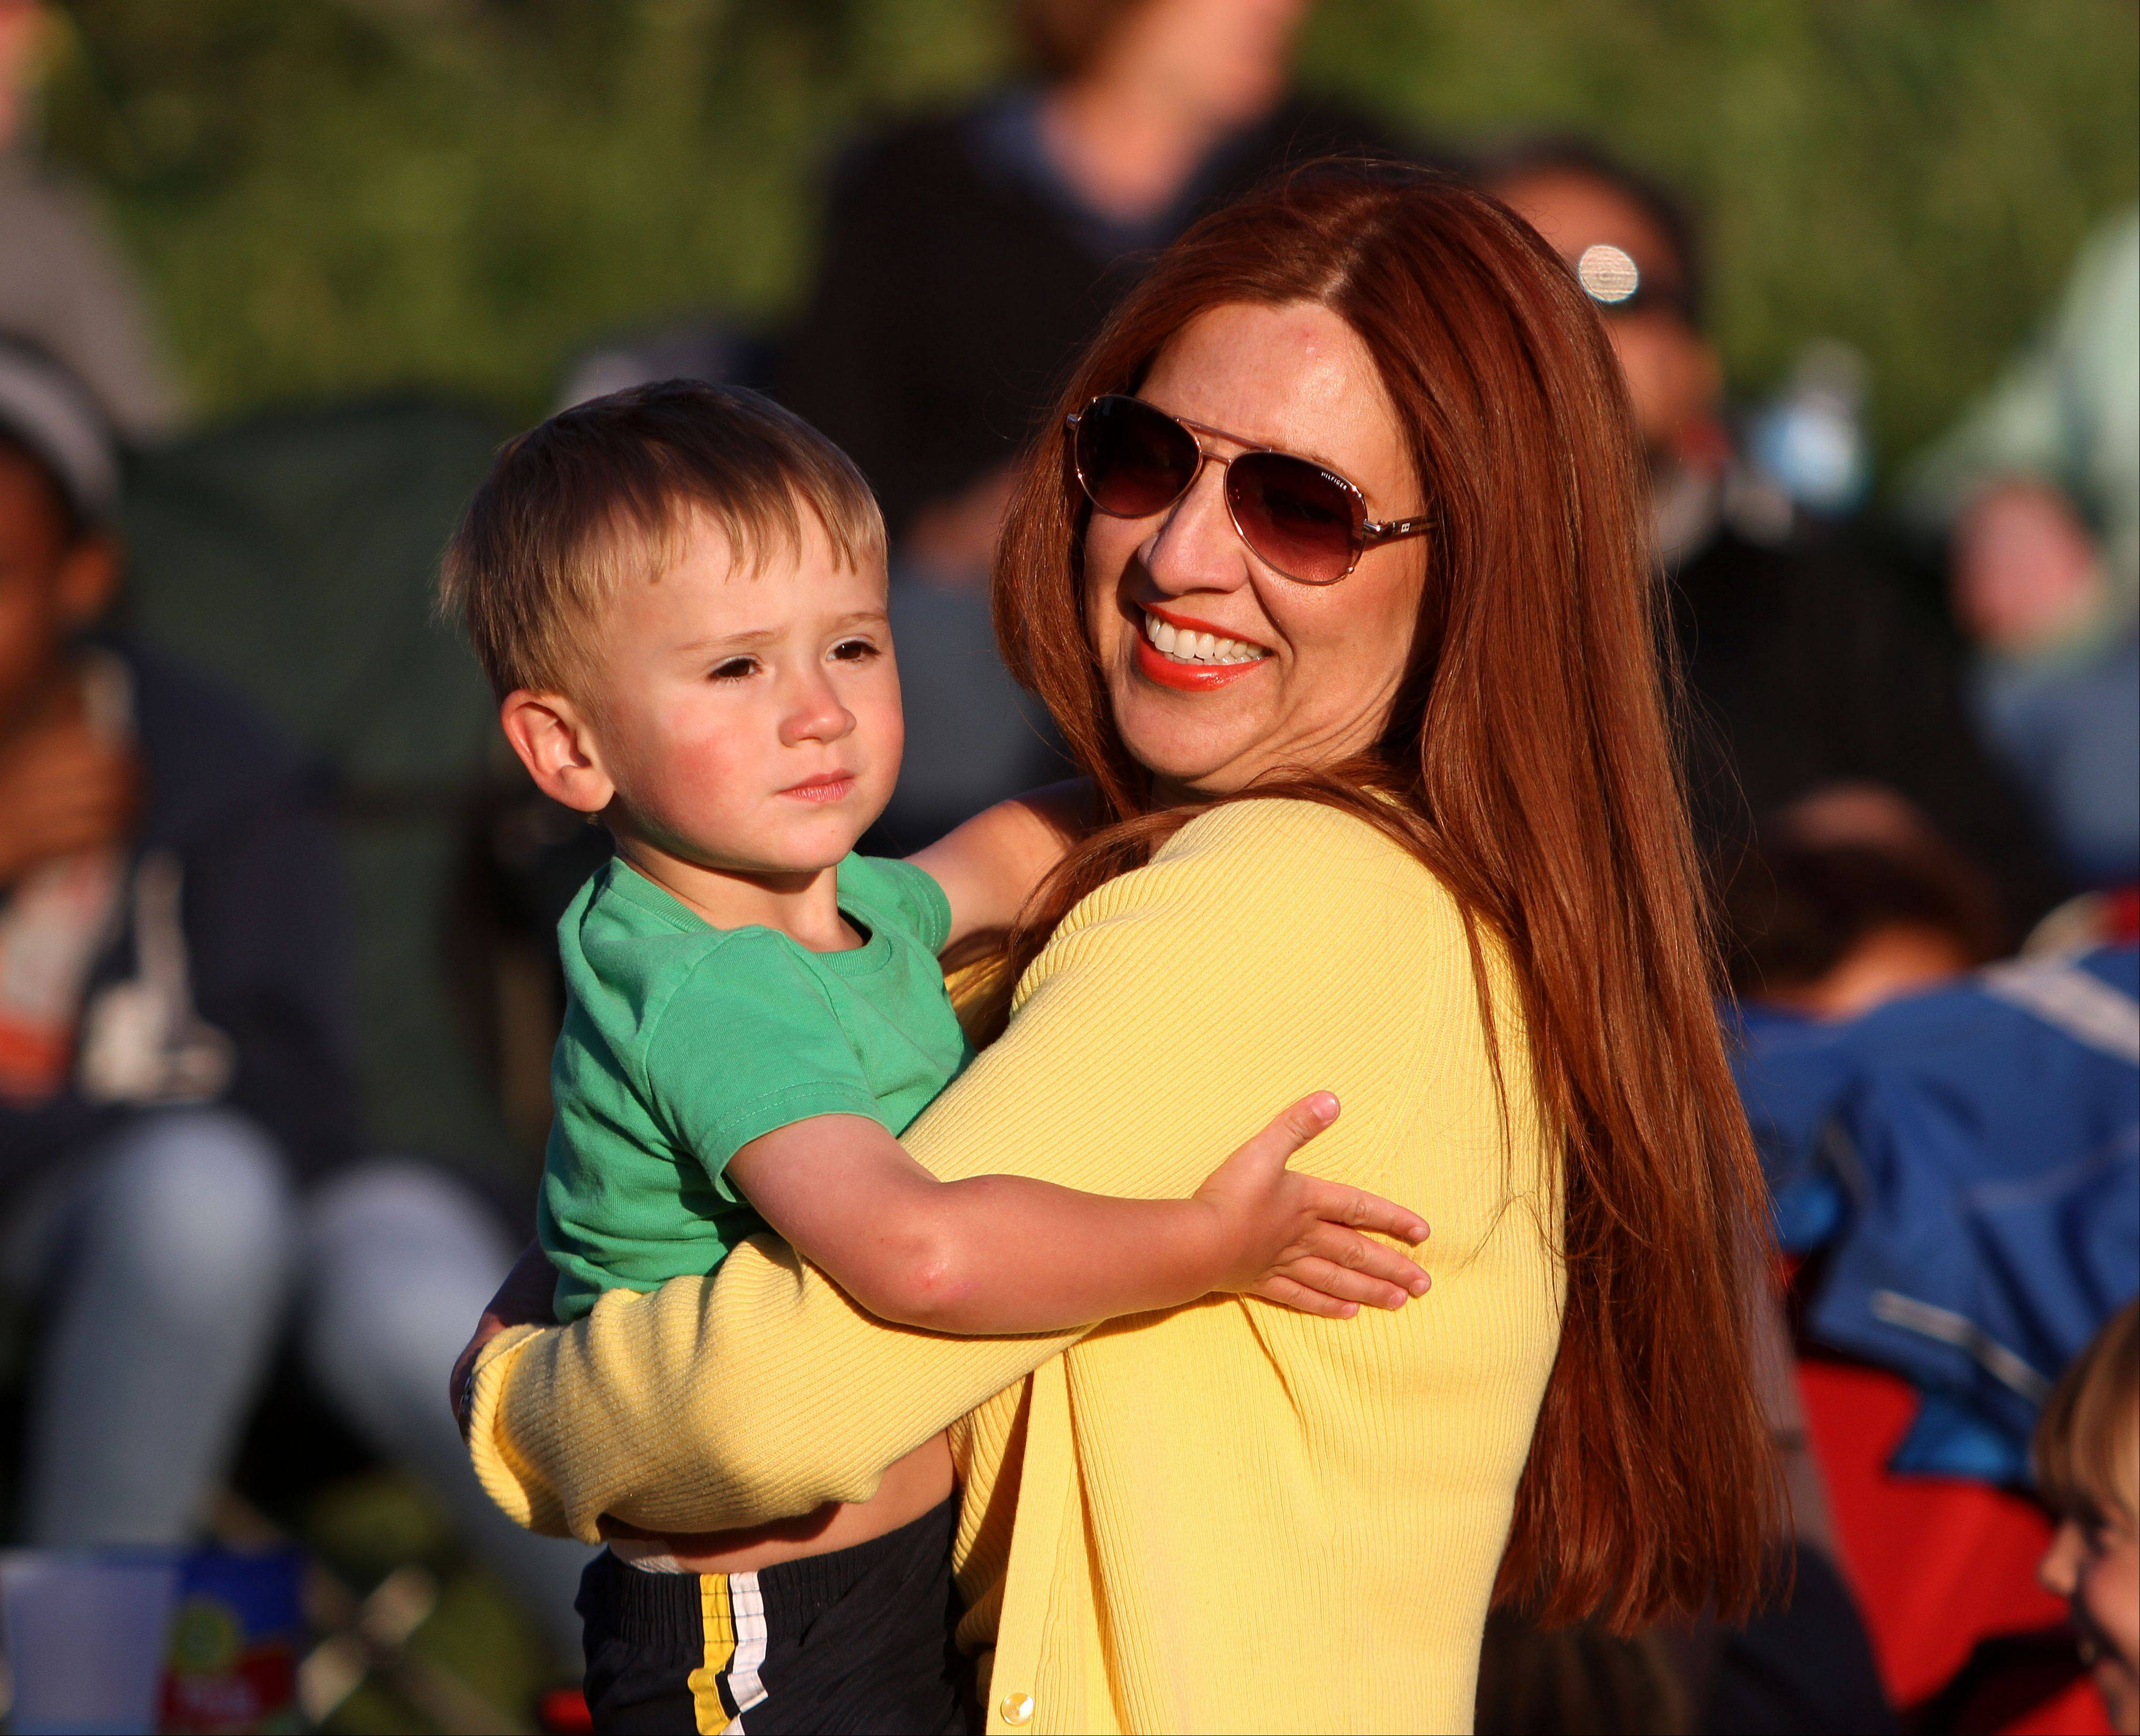 Annette Arnold dances with her 2-year-old nephew Brody Wozniak, both of Round Lake, as Events in the Plaza outdoor summer concert series kicked off Tuesday night with a performance by Chicago R&B Kings at Independence Grove Forest Preserve in Libertyville.